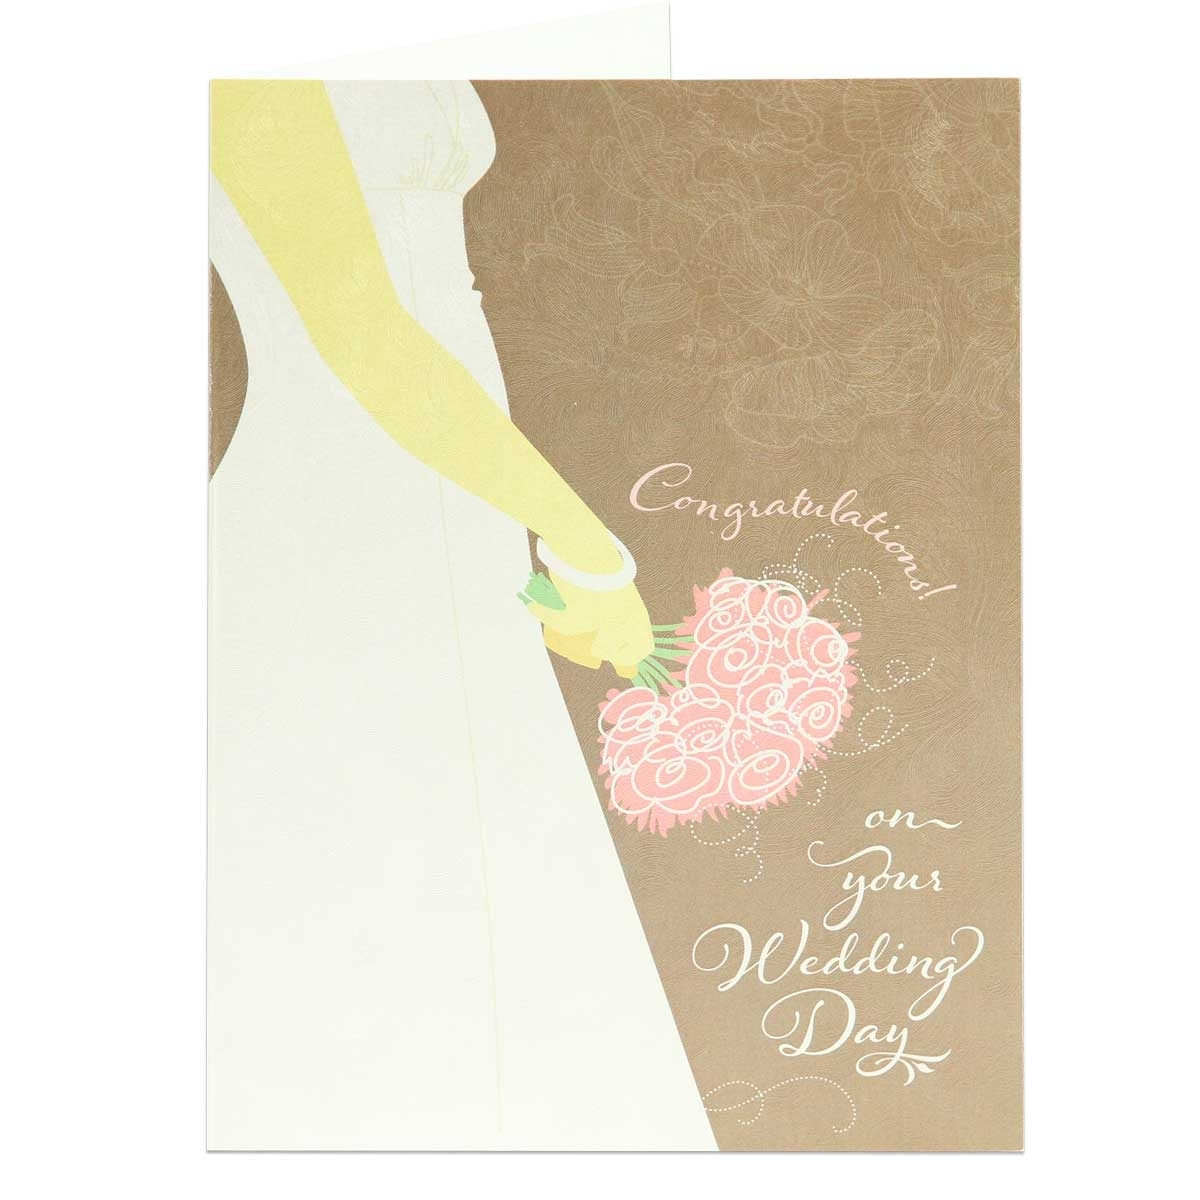 Wedding greeting card biblical wedding congratulations view larger photo email m4hsunfo